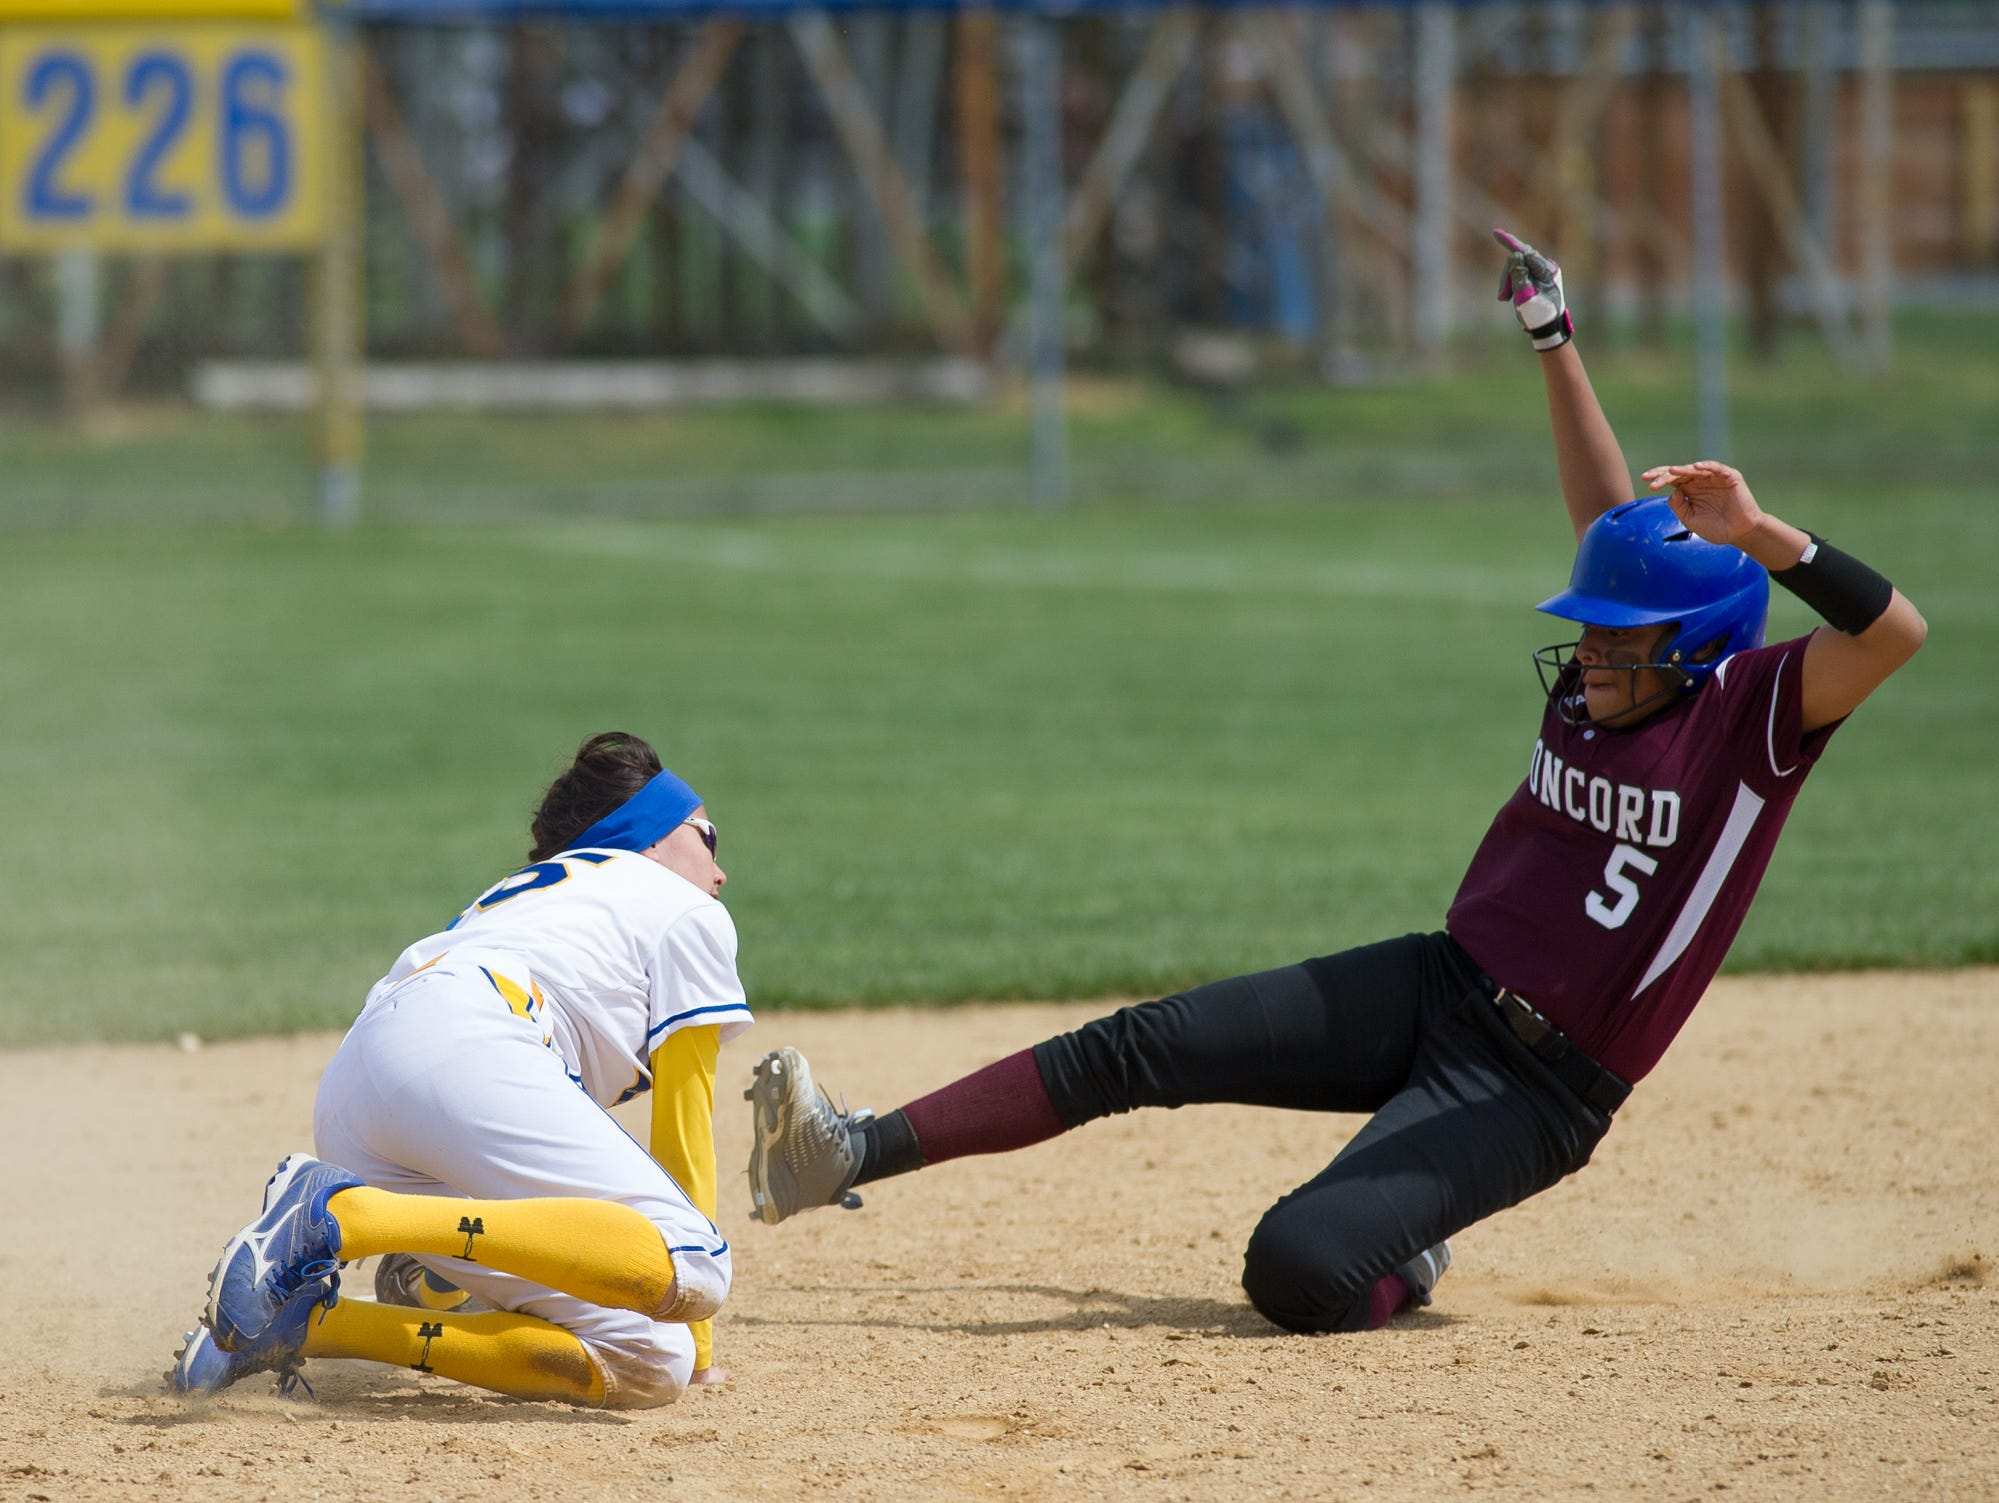 Caesar Rodney's Courtney Malin (15) tags Concord's Makaila Gordy (5) out at second base.